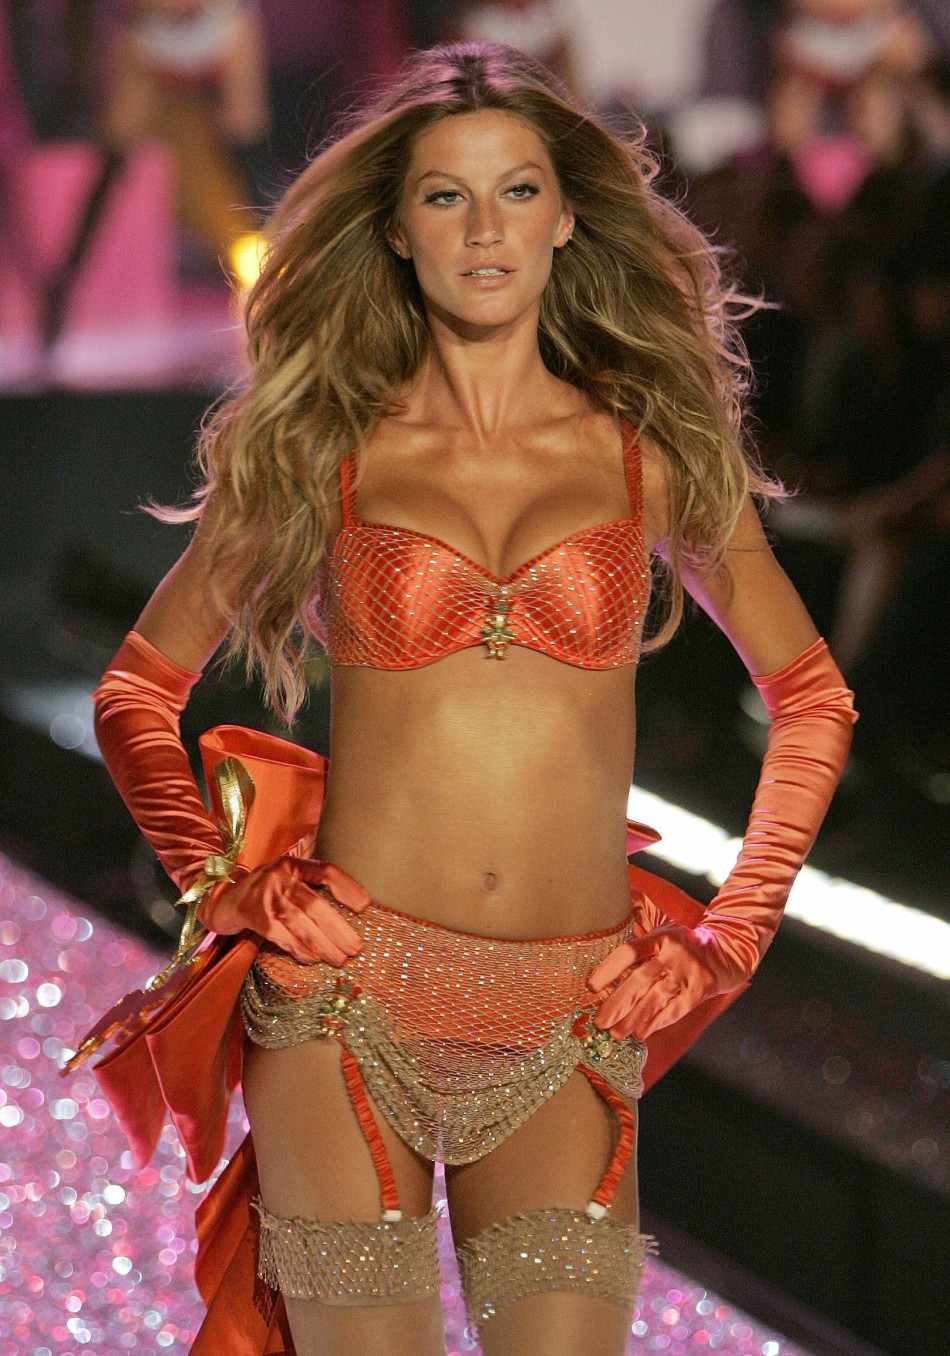 Supermodel Gisele Bundchen poses on the runway during the Victorias Secret Fashion show in New York..